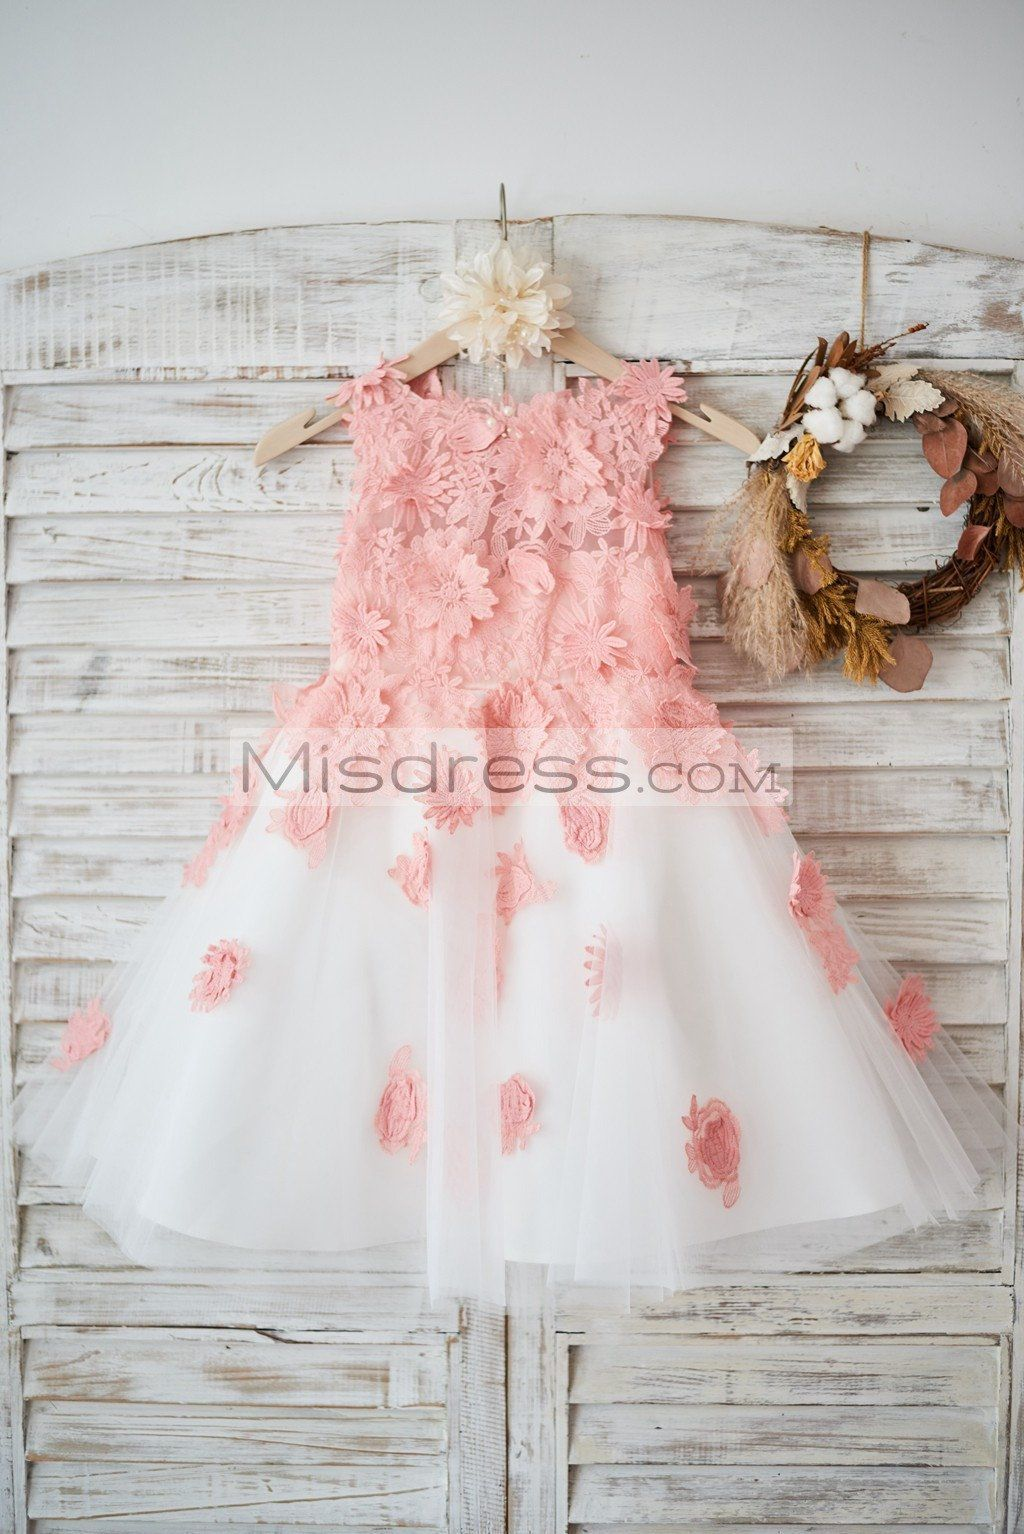 Ivory Tulle Peach Pink Lace Wedding Flower Girl Dress Httpswww